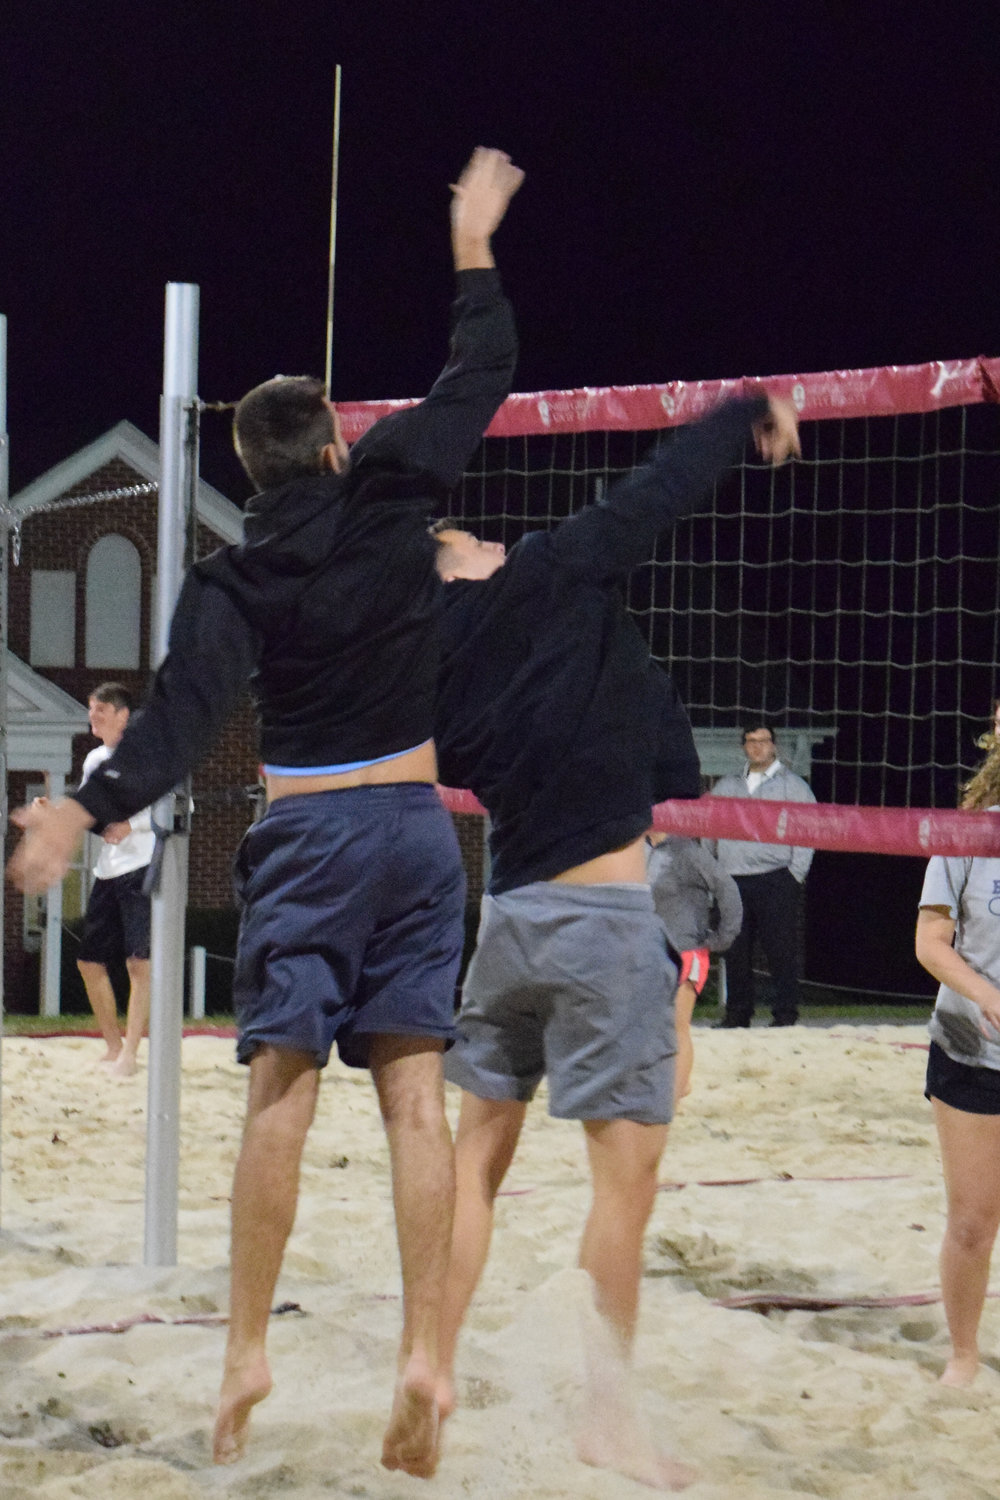 Junior, Landon Murray, jumps up behind junior, John Mark Trainer to help make sure the ball gets over the net.